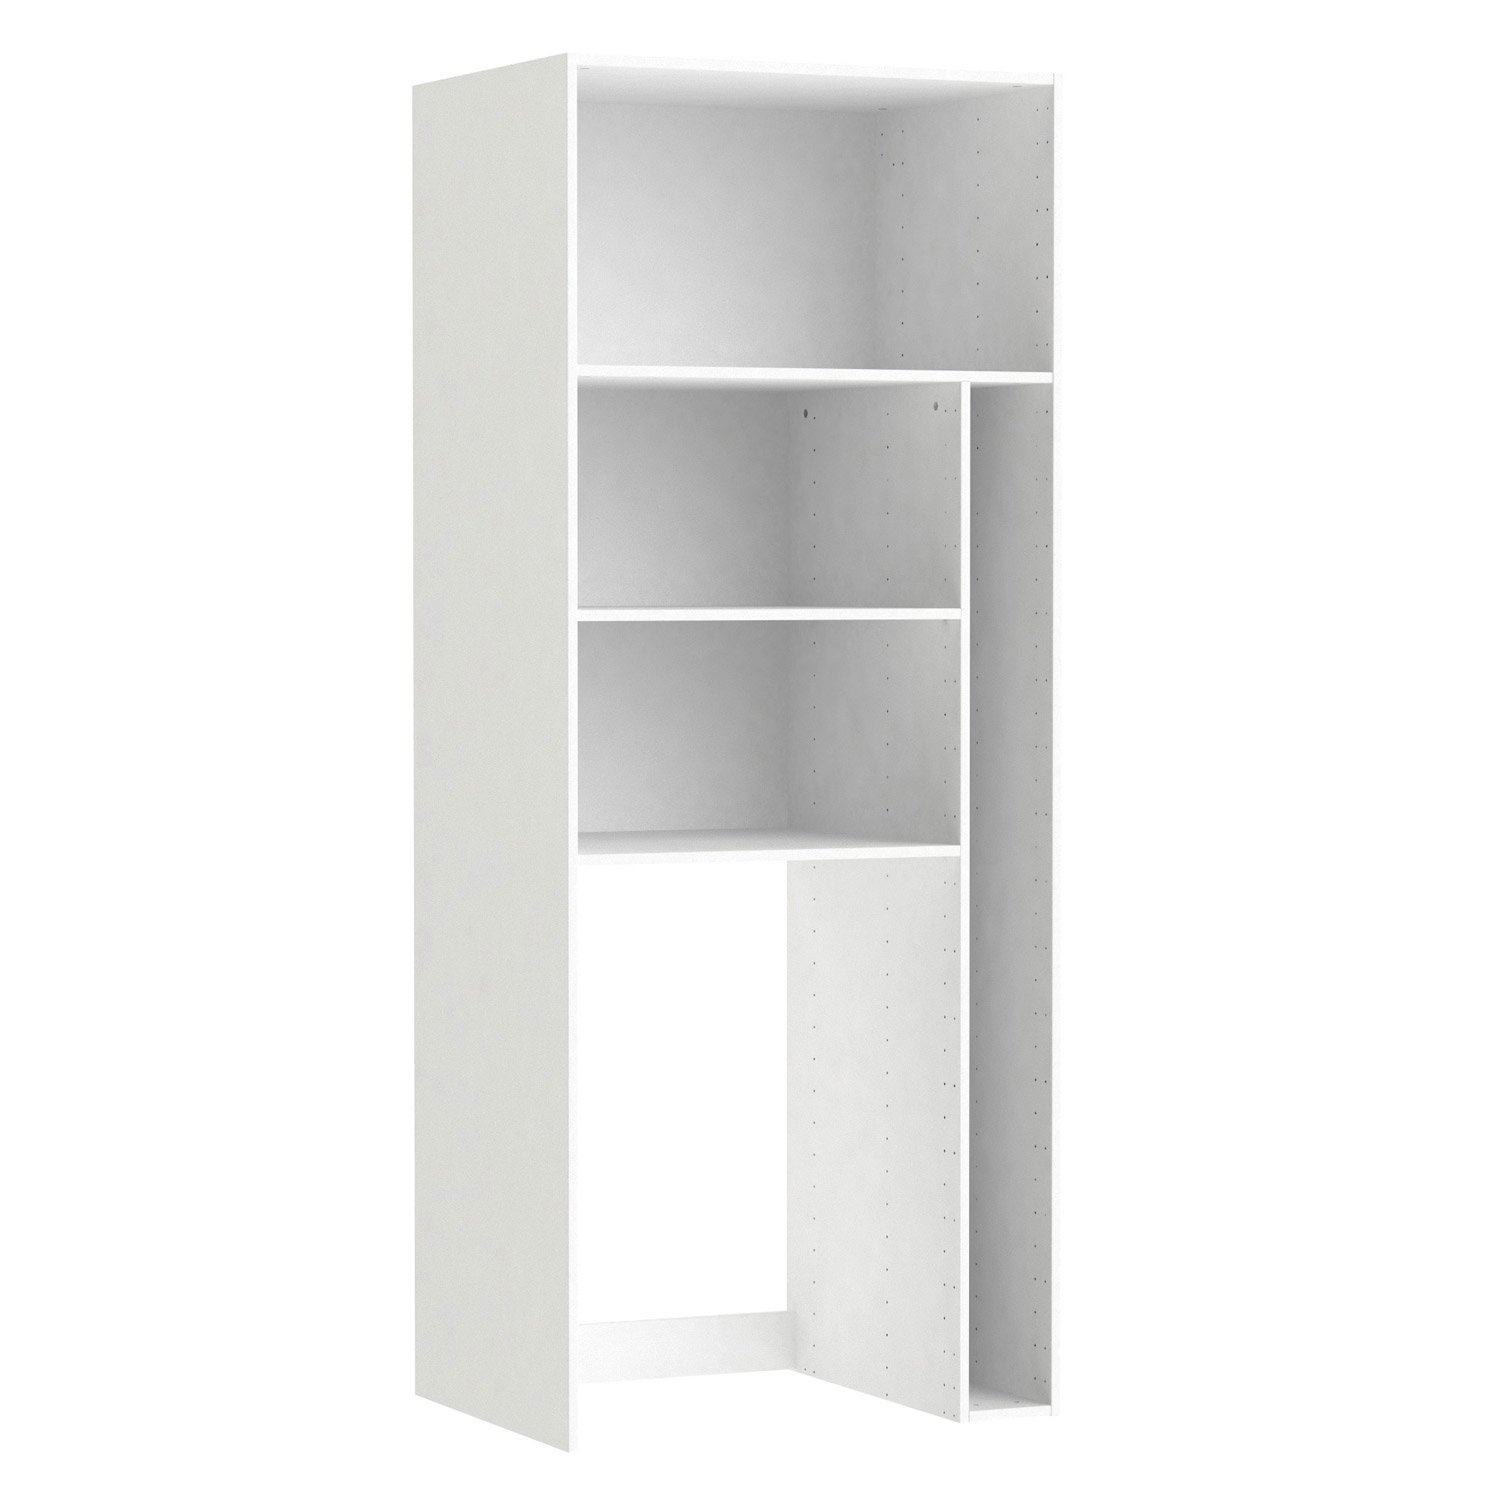 caisson buanderie spaceo home 200 x 80 x 60 cm blanc